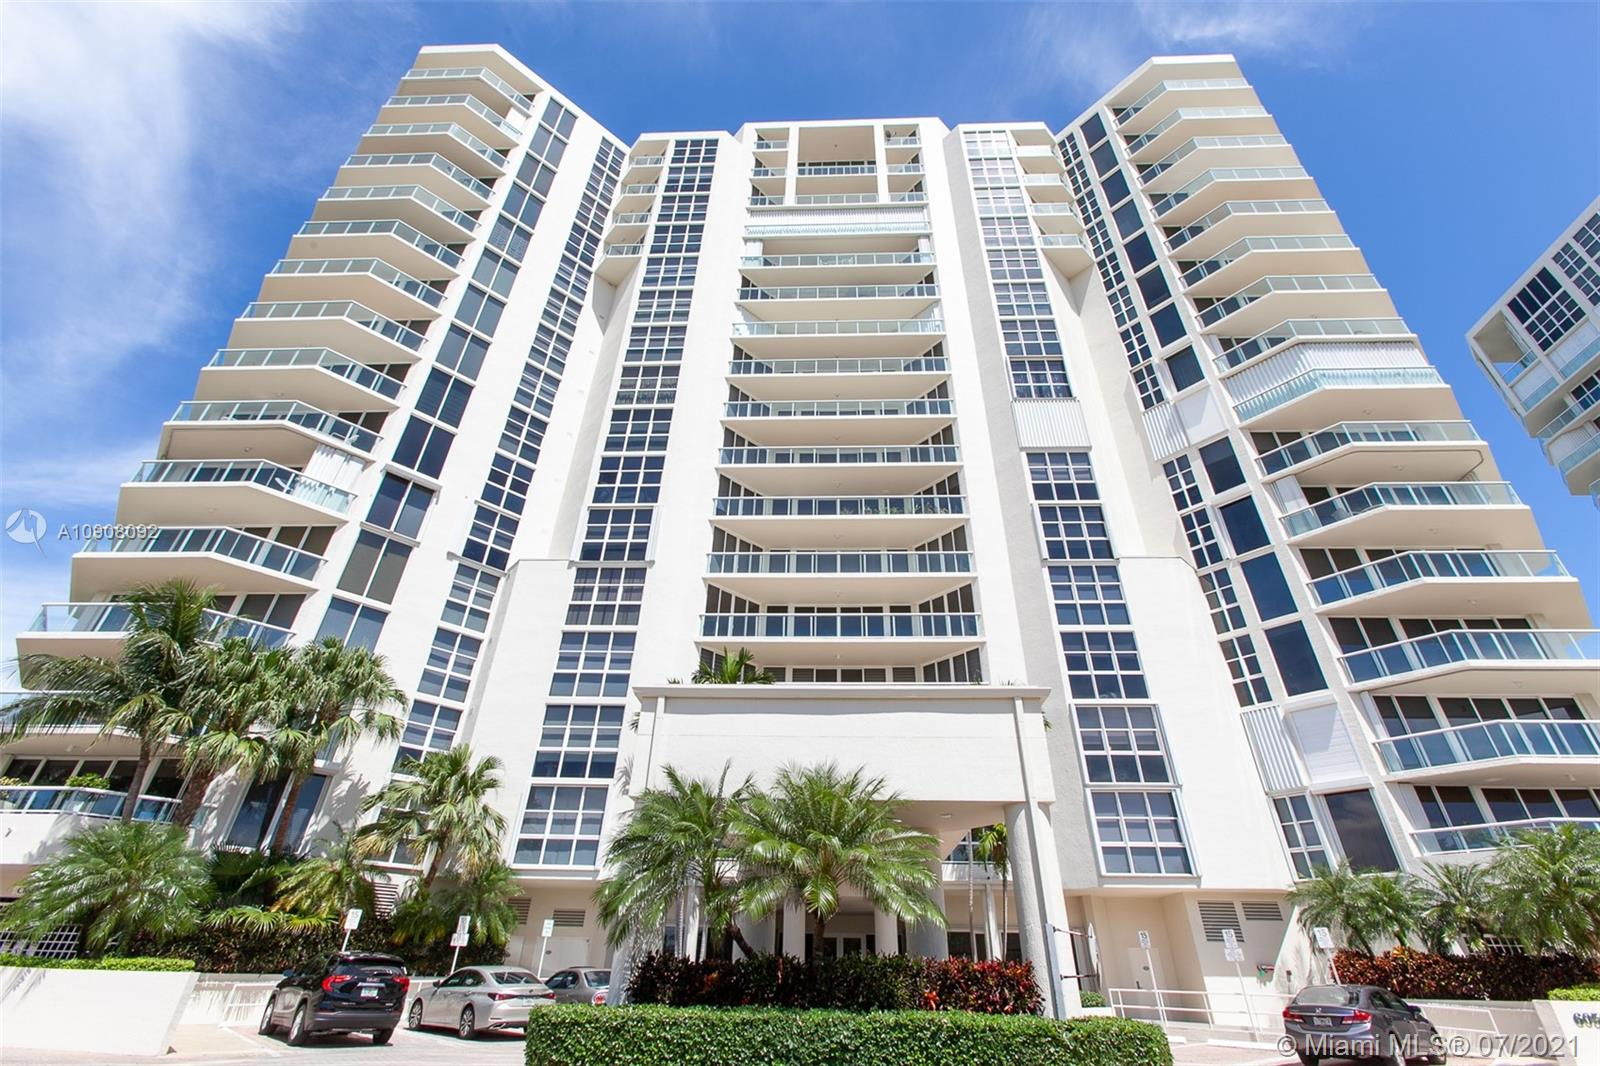 "Wow! Fabulous Double Unit In Renaissance On The Ocean! Enter Through Private Elevator Foyer From Double Doors And Immediately See Direct Sweeping Unobstructed Ocean Views That Will Take Your Breath Away. This 4 bd/ 4.5 ba Spacious Residence Boasts An Open, Over-sized Living Room And Open Kitchen. Light + Bright With Huge Terraces! Most Desirable Floor Plan In This ""One of a kind "" Home That Features A Split Floor Plan For Privacy. The Enormous Master Suite Has His And Hers Closets The Size Of Bedrooms & A Sitting Area/Media Room. A Jewel To Behold! Renaissance Sits Directly On The Ocean Surrounded By 8 Pristine Acres Of Property/ Beach. Five Star Amenities Include Oceanside Heated Pool, On-site Restaurant, Health Spa, Gym, Library, Tennis Courts, Valet, And Concierge! Has It All!"